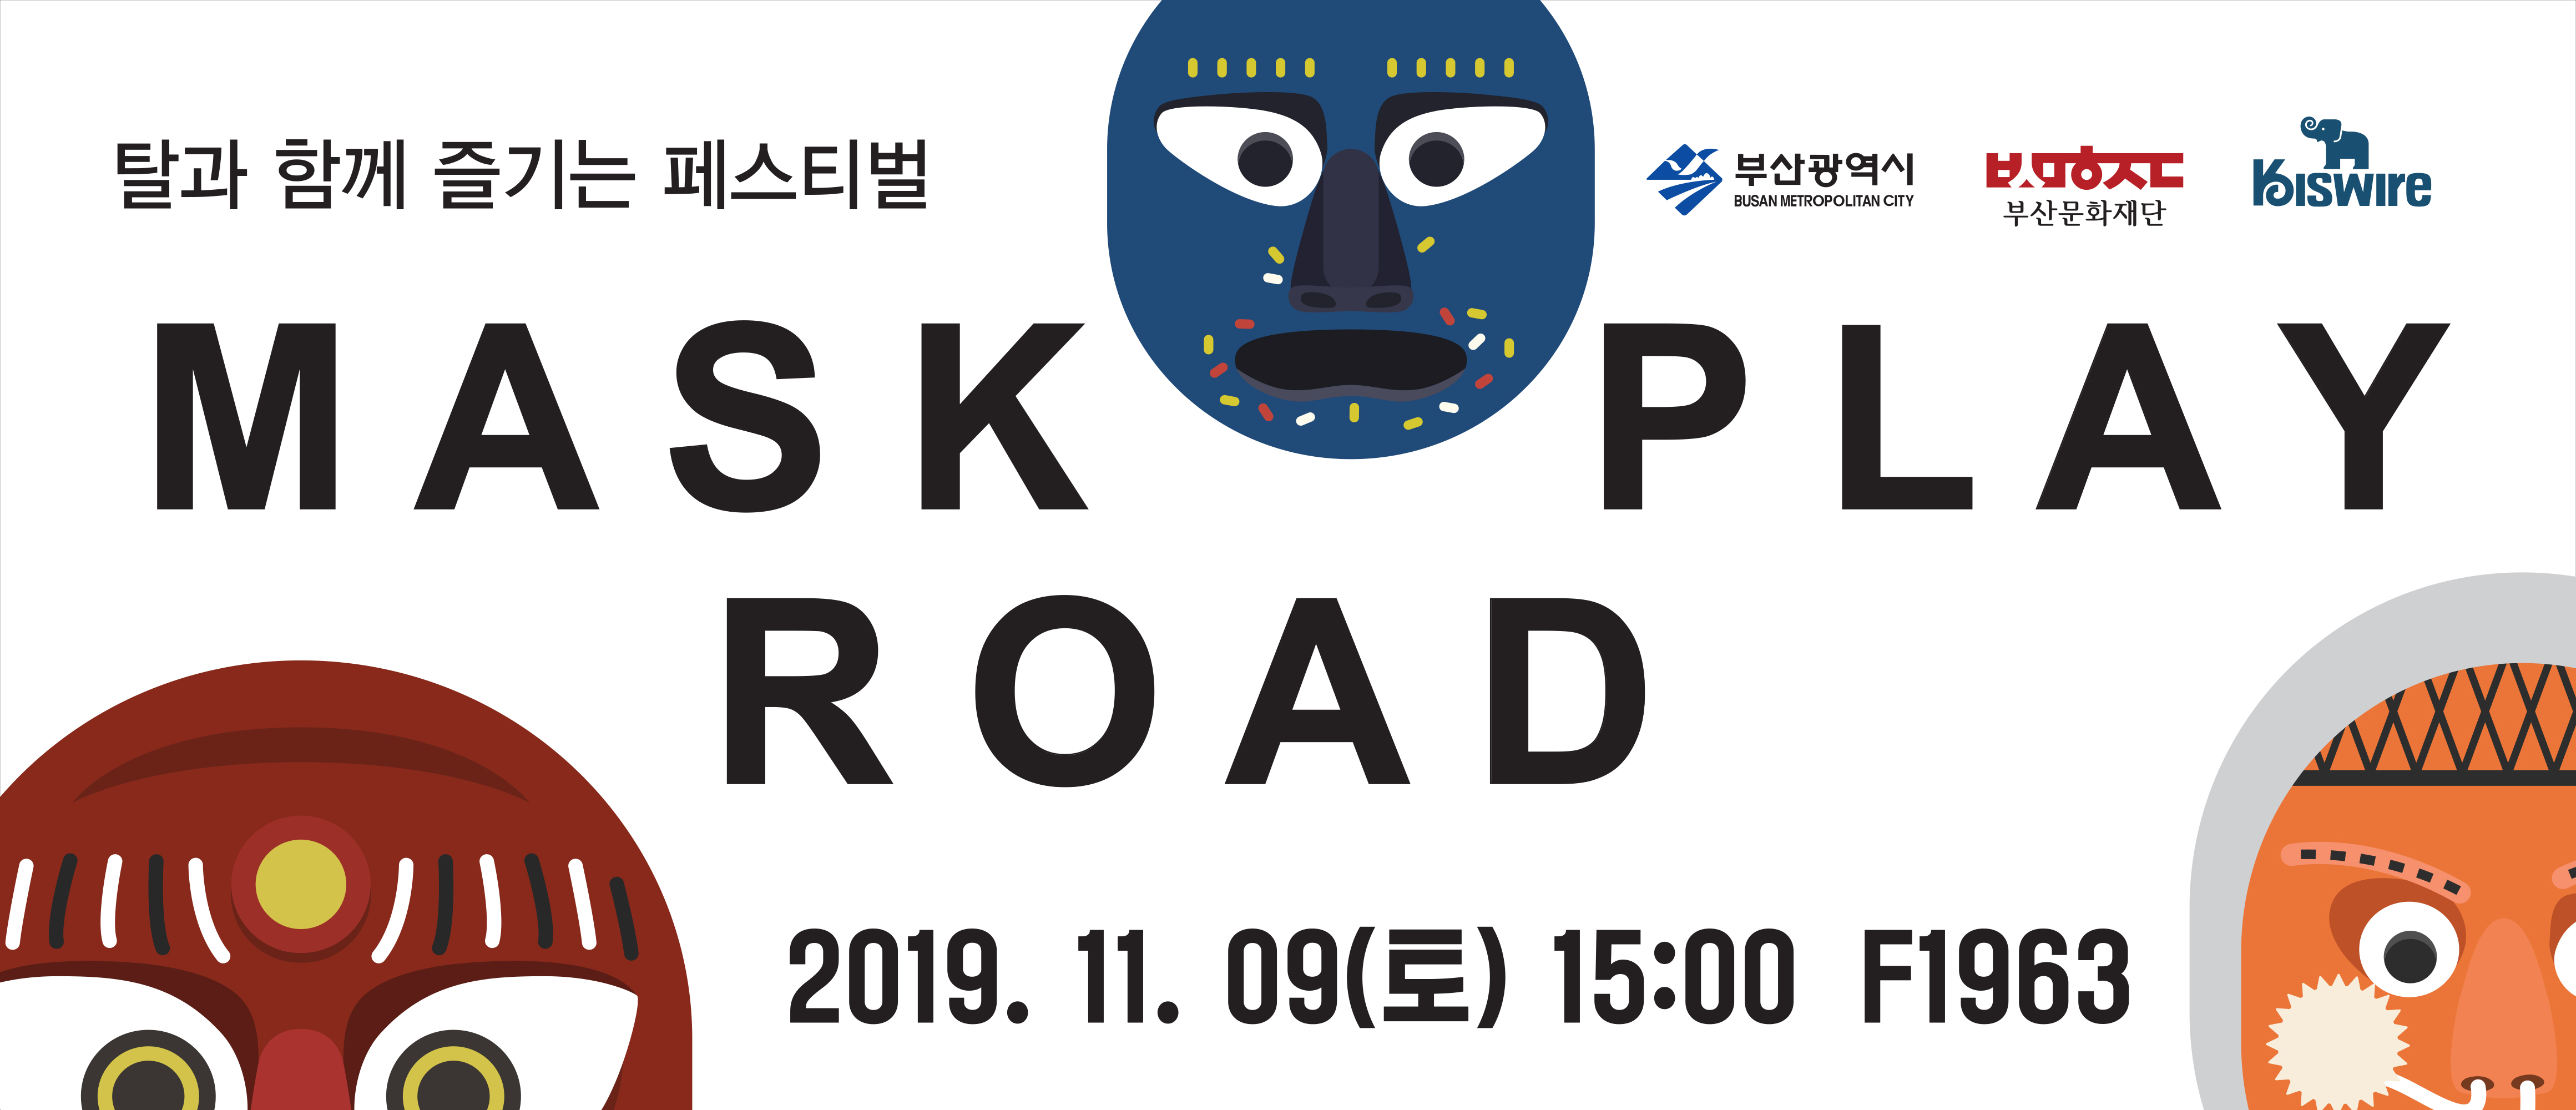 F1963 기획공연  《MASK PLAY ROAD》